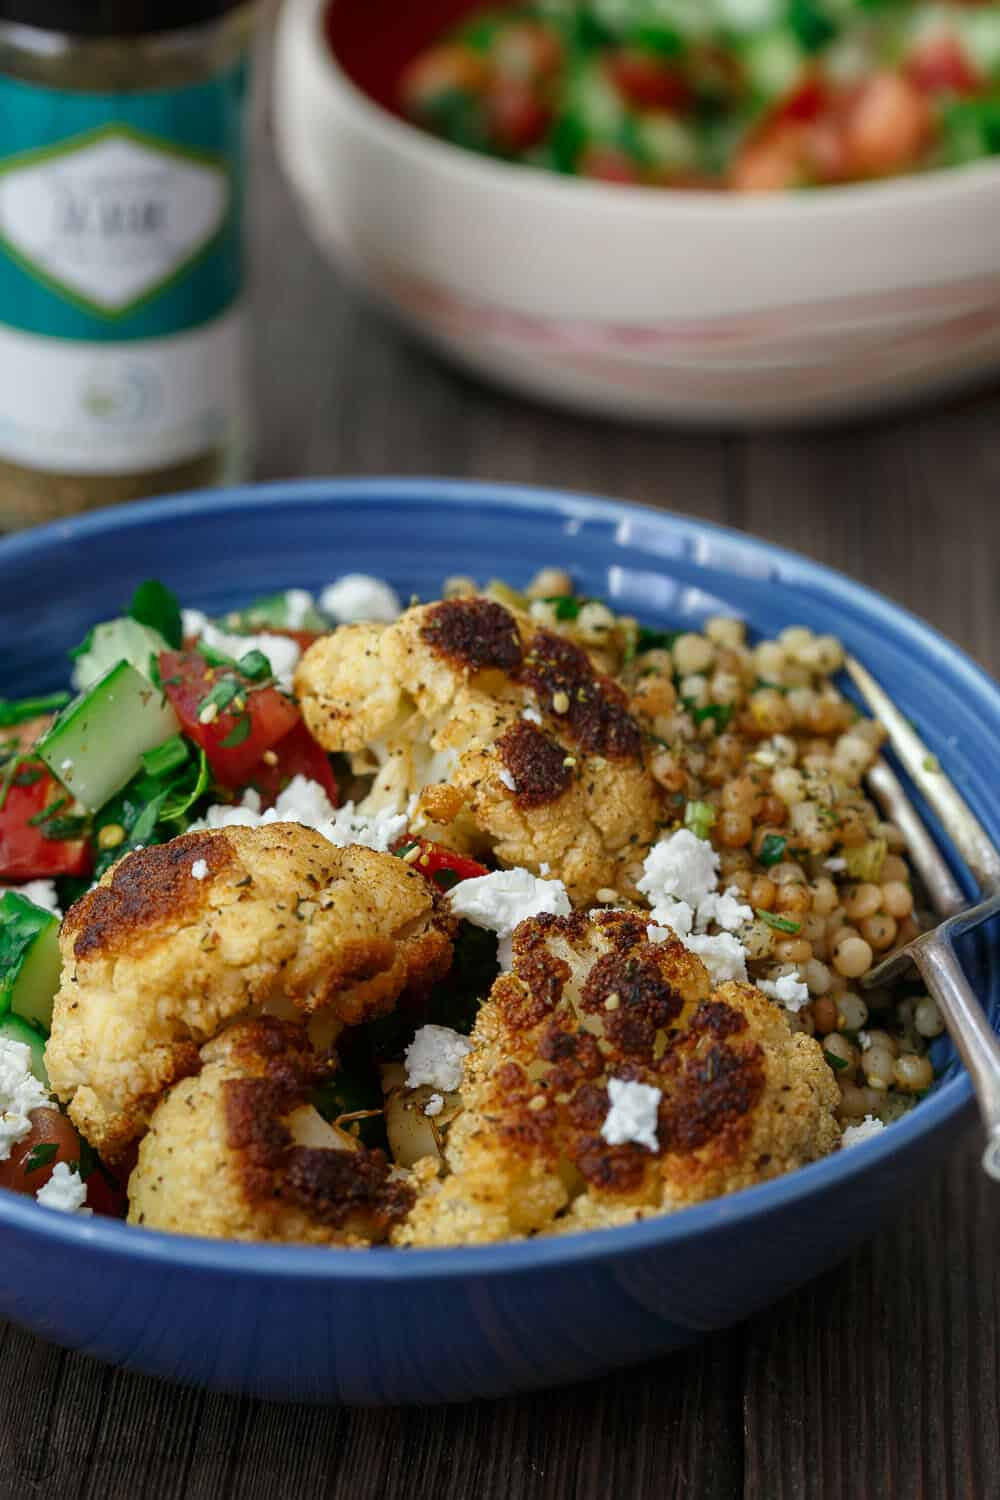 Bowl of Couscous and Roasted Cauliflower garnished with feta cheese